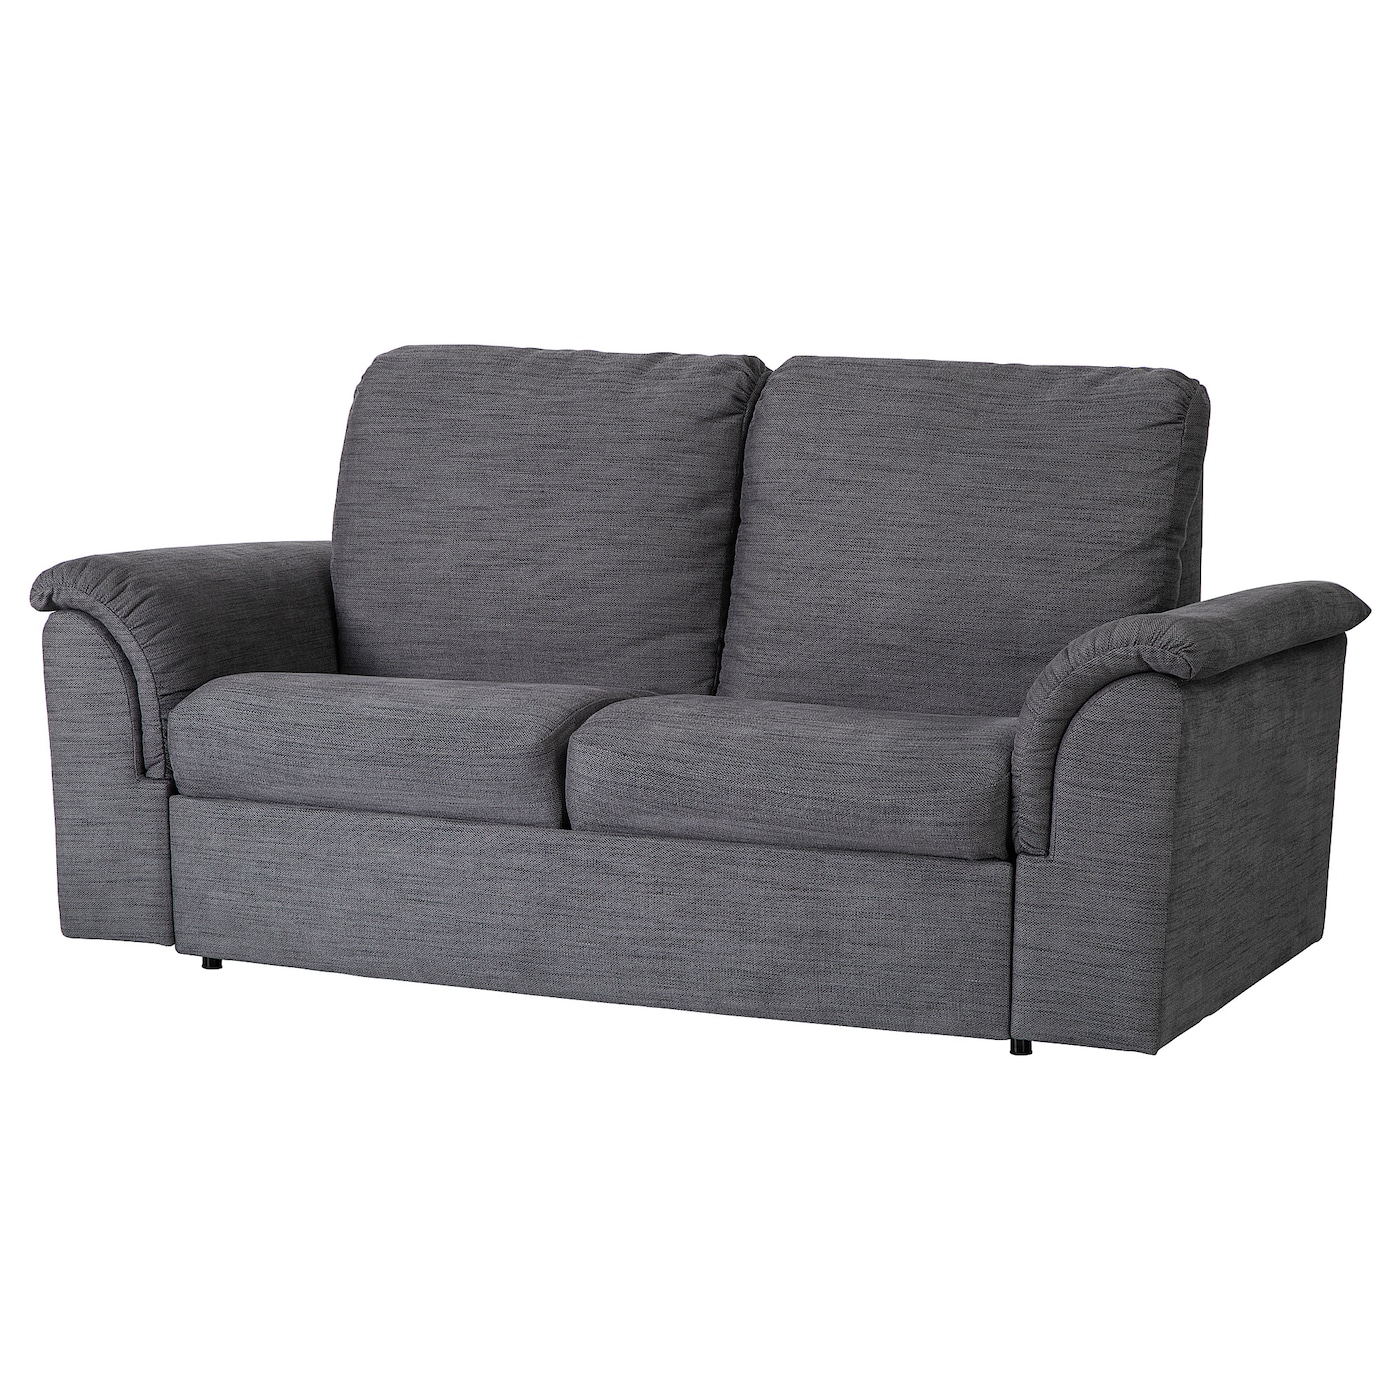 2-seat sofa-bed VÄSTBY Hensta grey